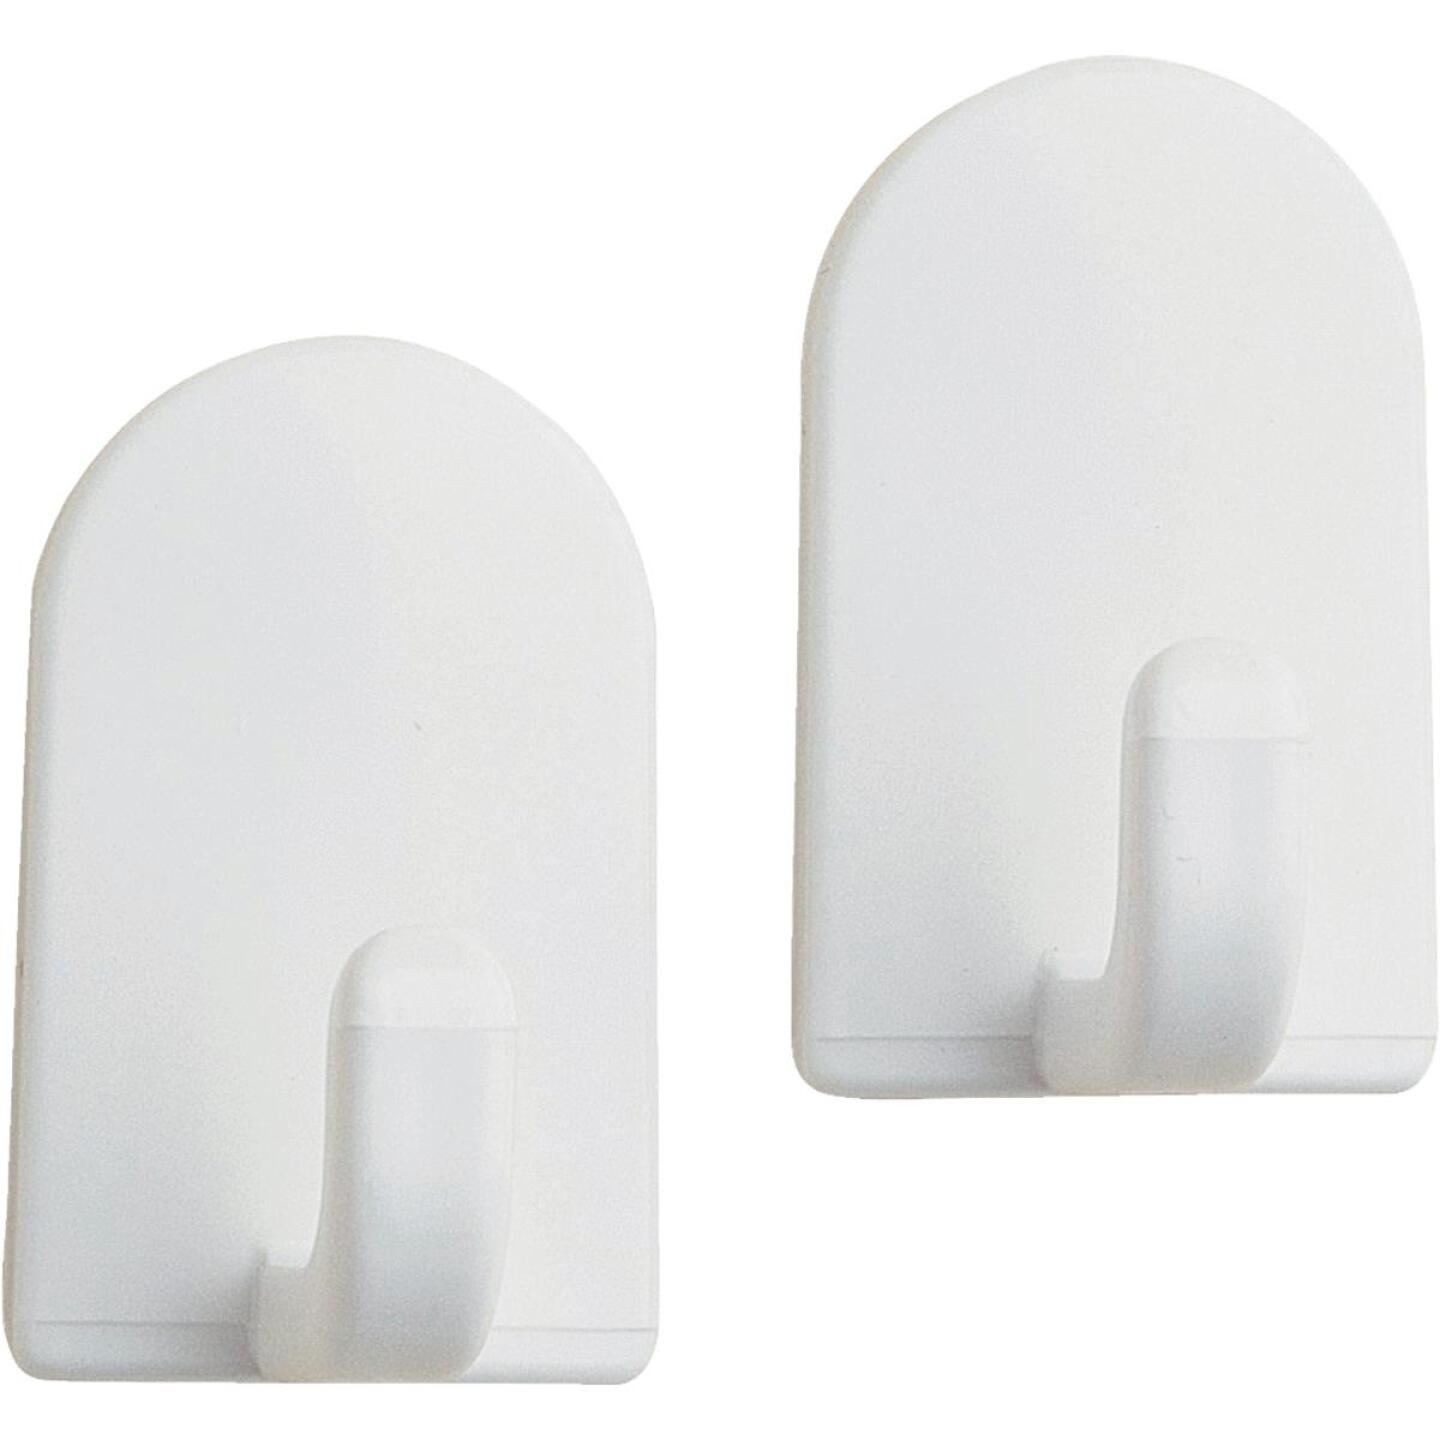 InterDesign Soap Savers Mini White Plastic Adhesive Hook (2-Pack) Image 1